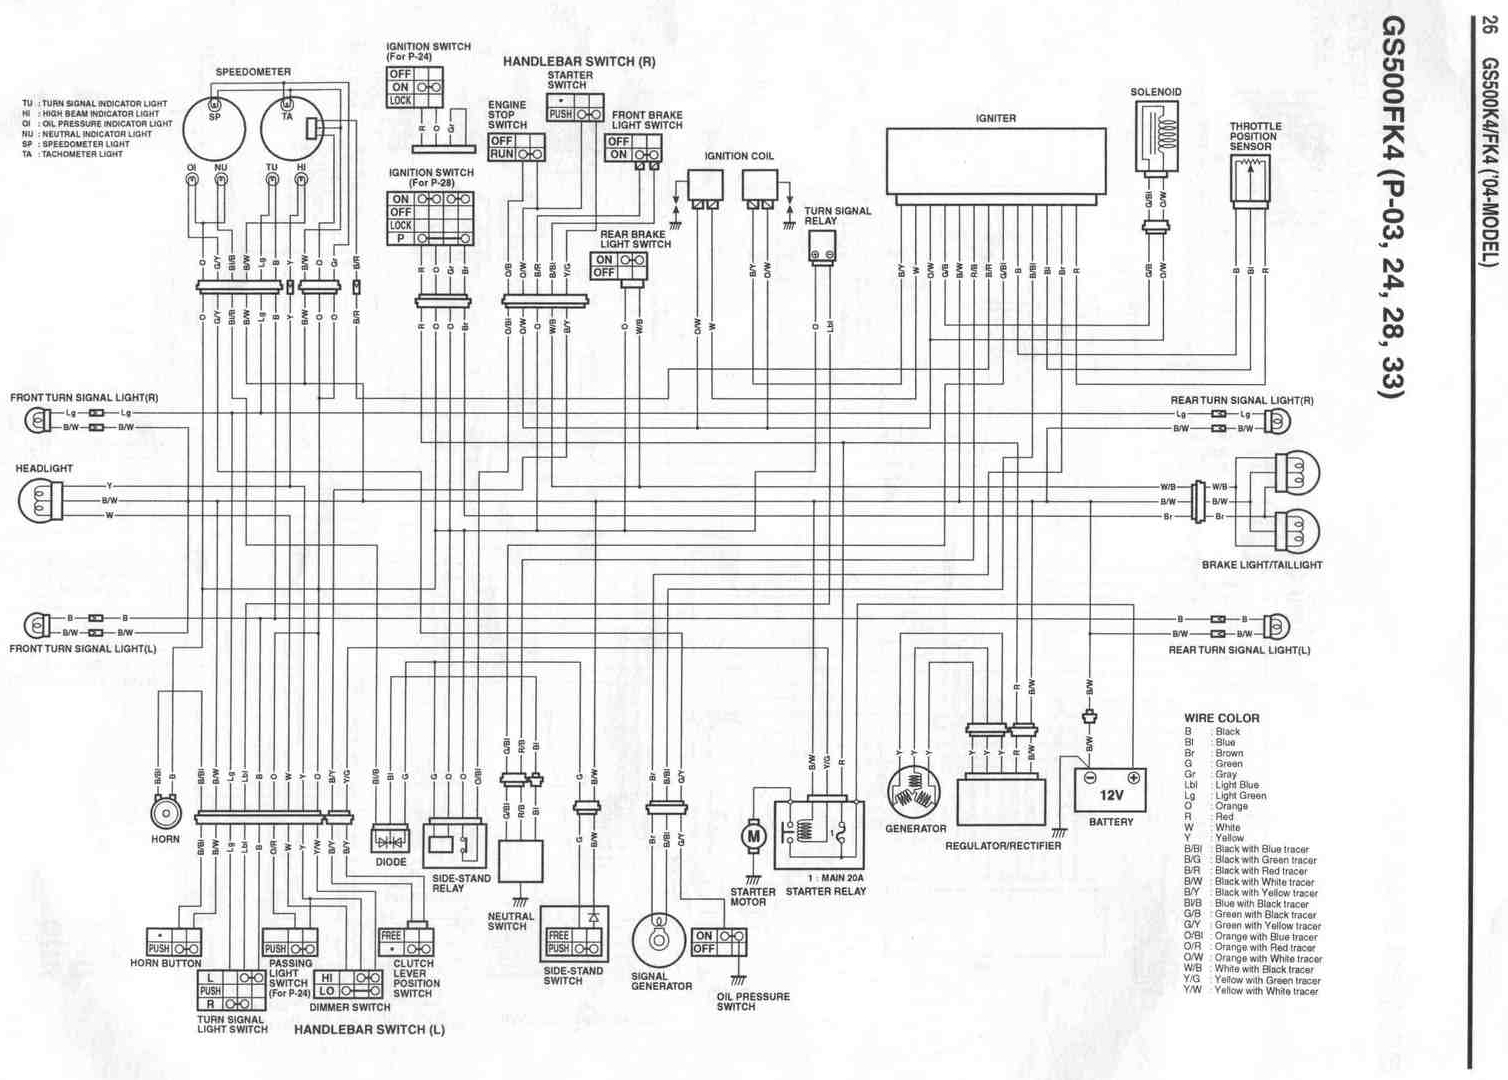 Suzuki_WiringDiagram_04 wire diagram gs500f 06 Wiring Harness Replacement Hazard at edmiracle.co